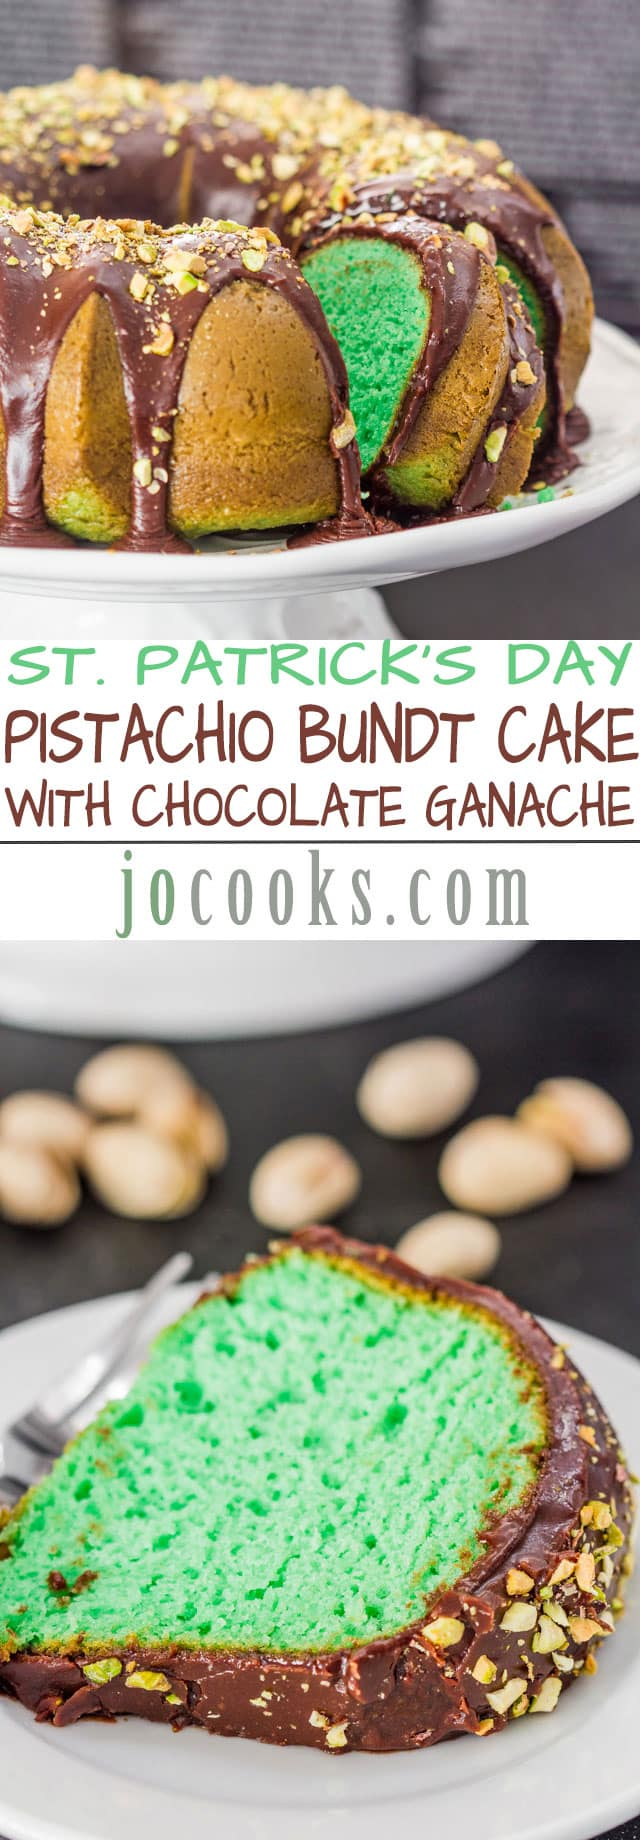 Pistachio Bundt Cake with Chocolate Ganache - perfect cake for St. Patrick's day. Soft, chocolaty, delicious and topped with pistachios.